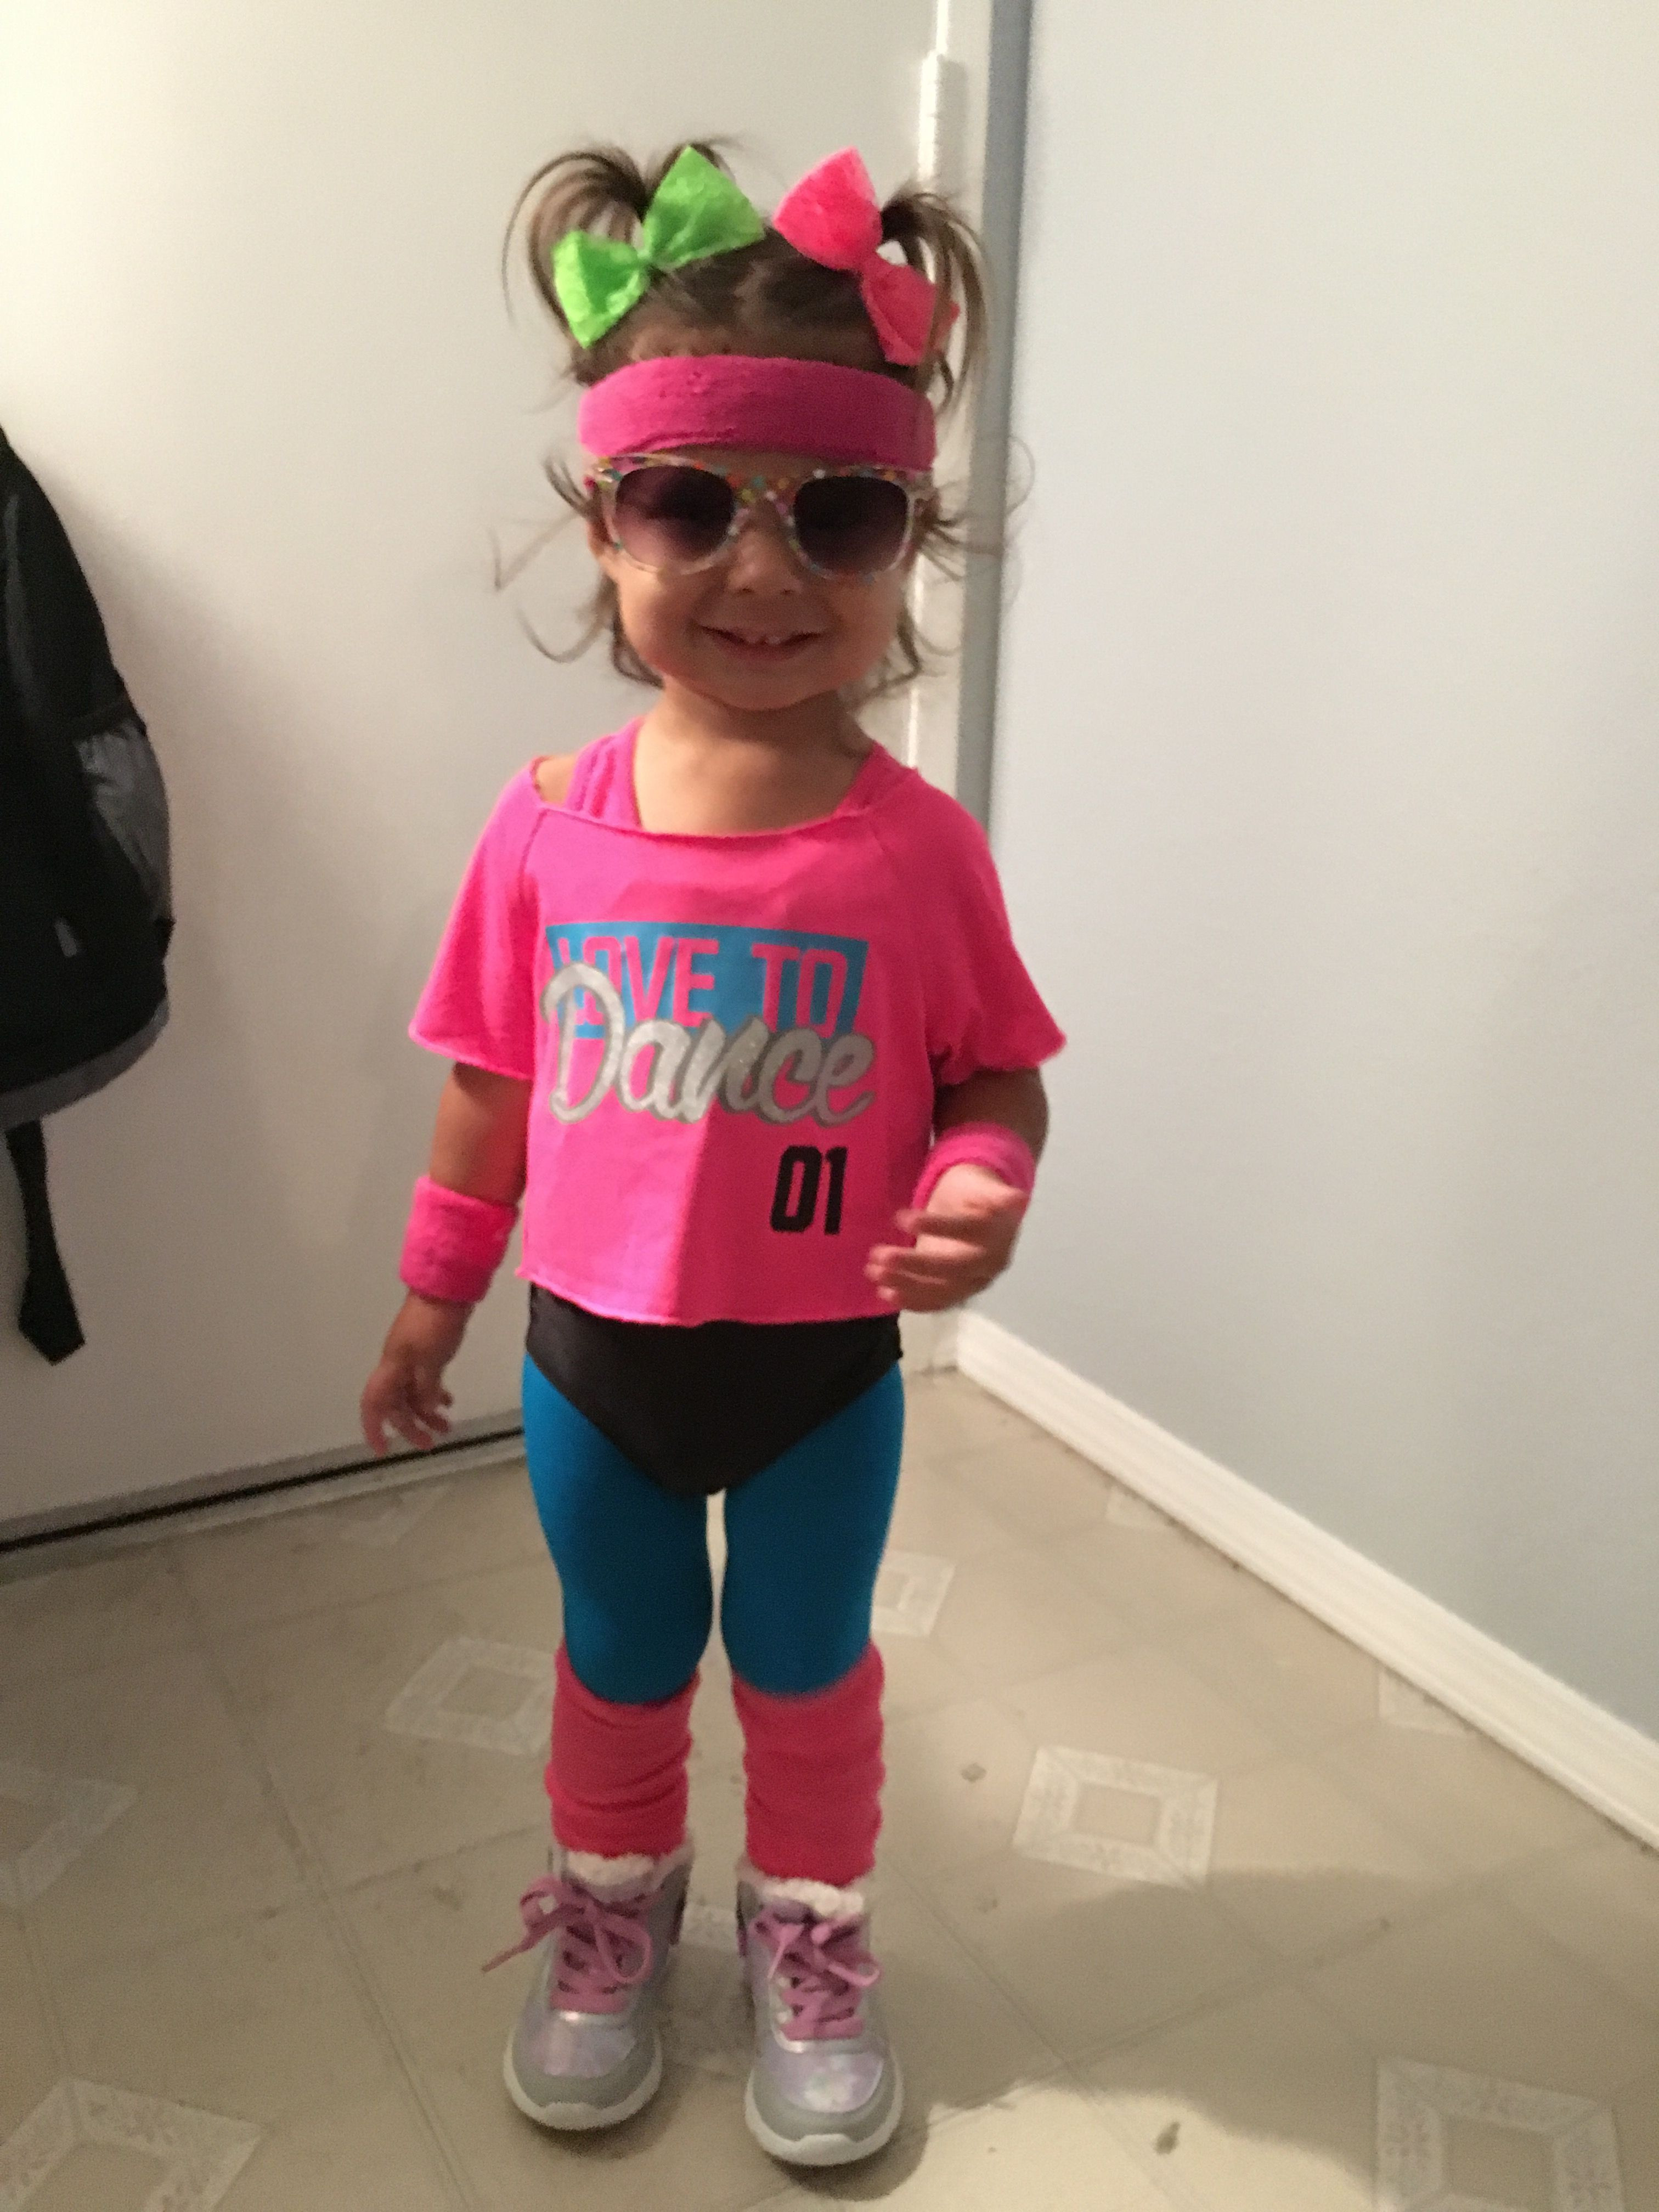 Best ideas about 80S Workout Costume DIY . Save or Pin Toddler 80 s workout costume Halloween Now.